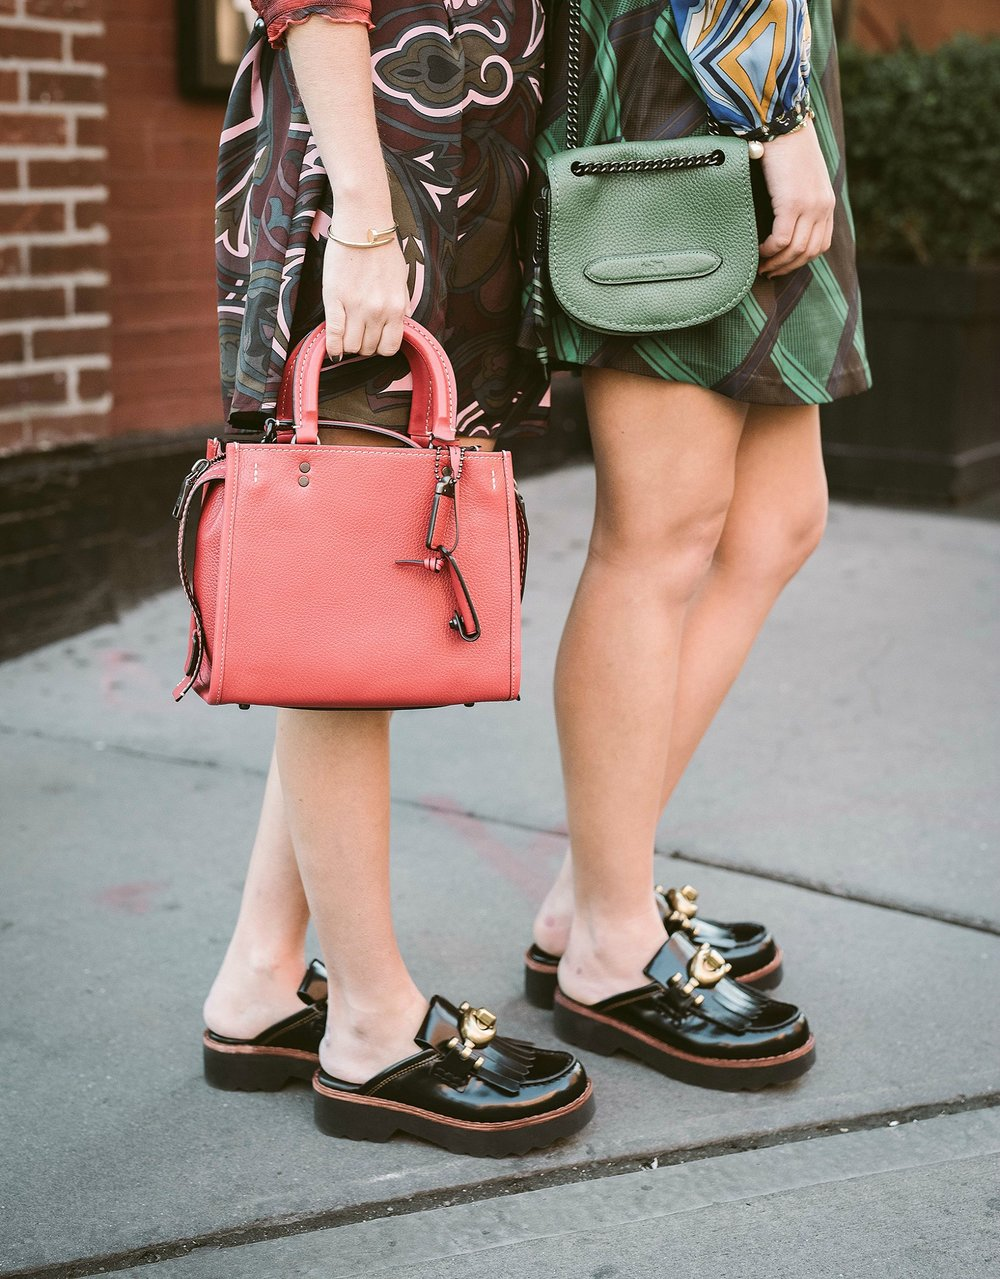 SOPHIE AND CHARLOTTE BECKLEY YIN 2MY YANG FASHION BLOGGERS LEGS